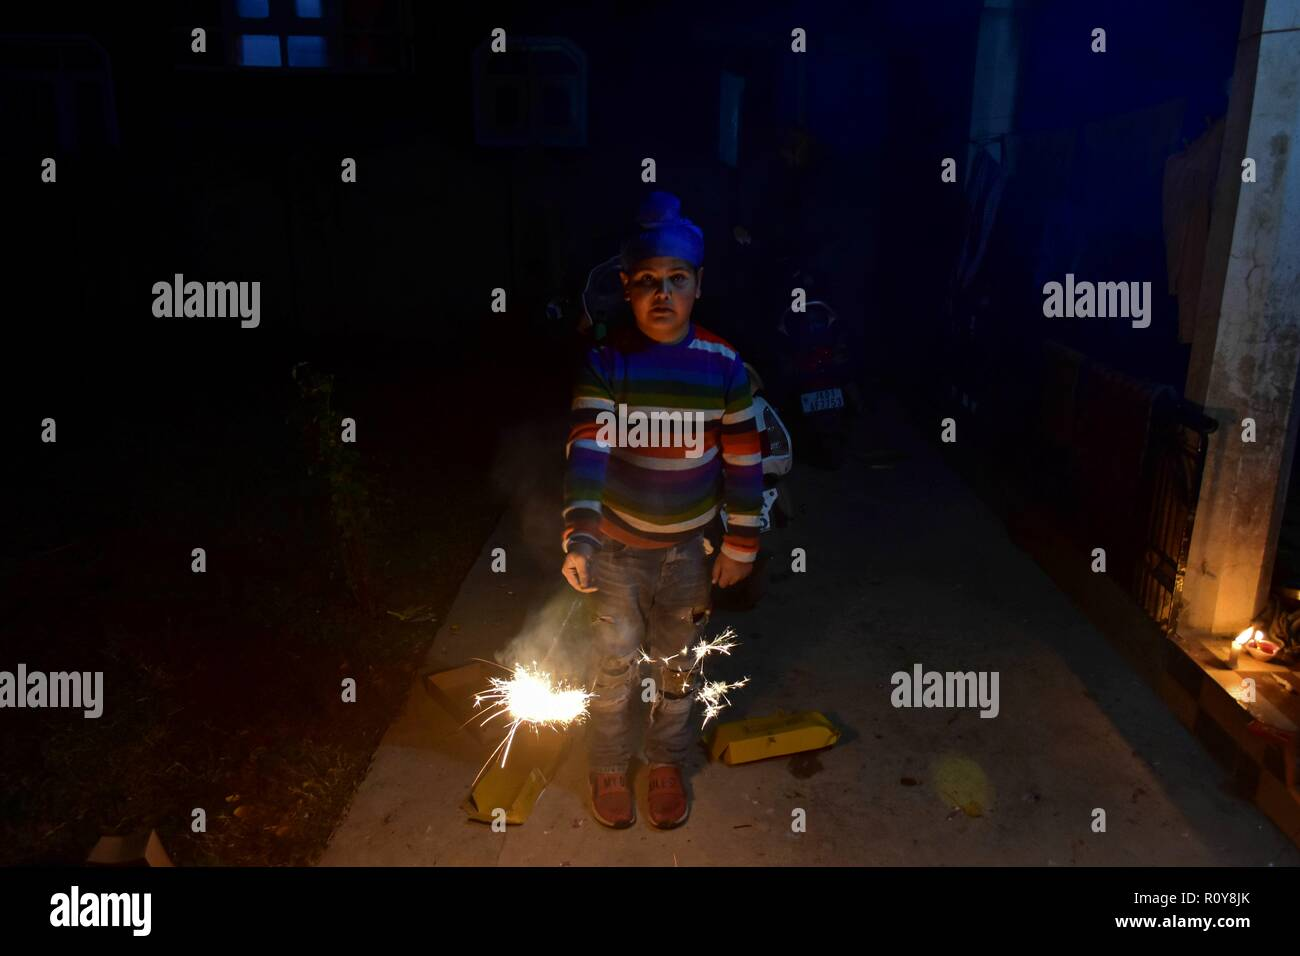 Lighting Up November Darkness >> November 7 2018 Srinagar J K India A Boy Seen Lighting Up A